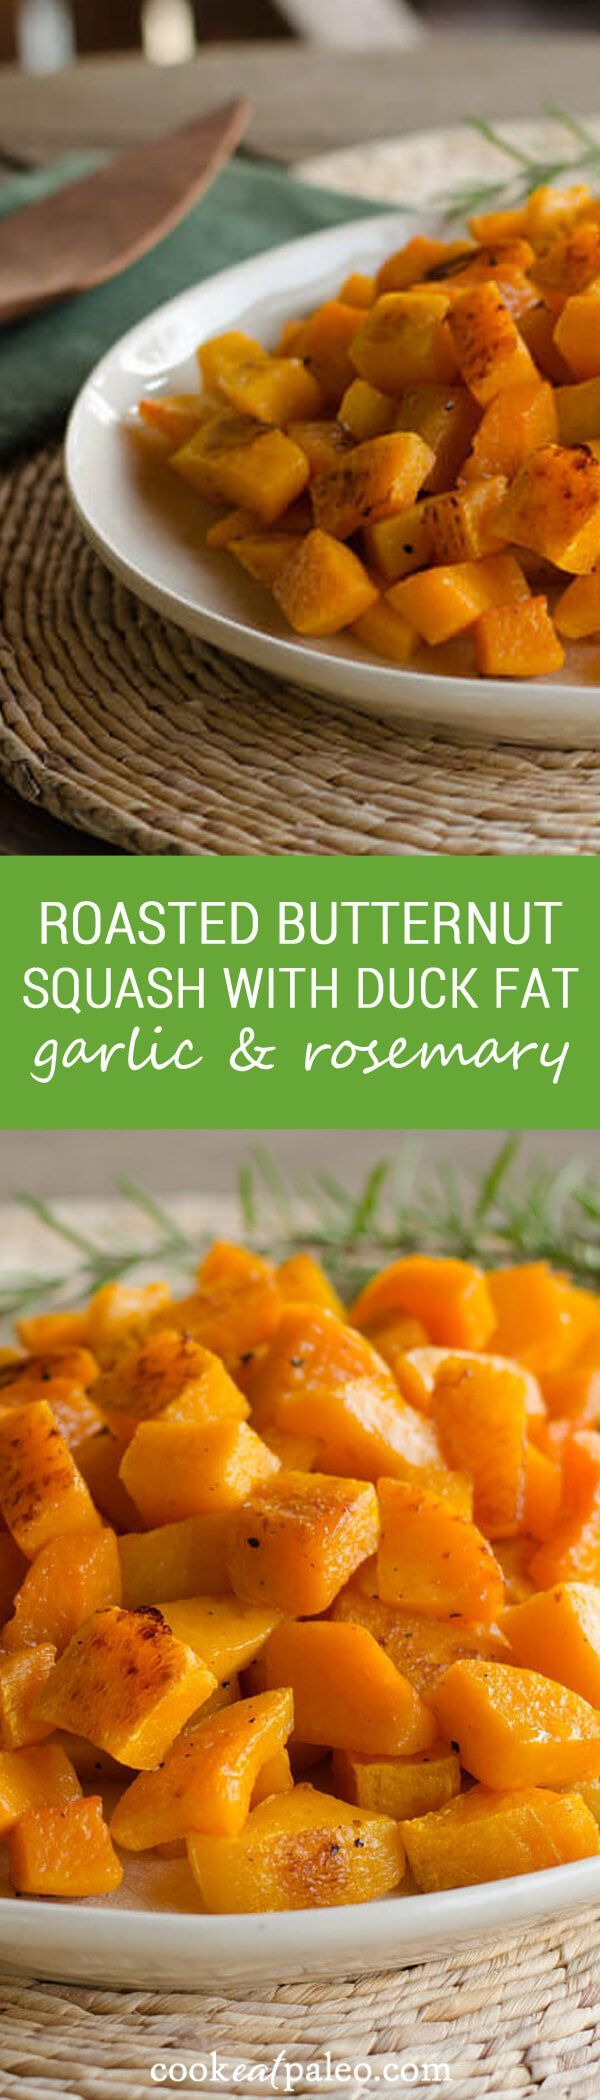 Butternut Squash Roasted with Duck Fat, Garlic and Rosemary - this recipe is incredibly simple. The hands-on prep takes just a few minutes, and the oven does all the work for you. ~ http://cookeatpaleo.com